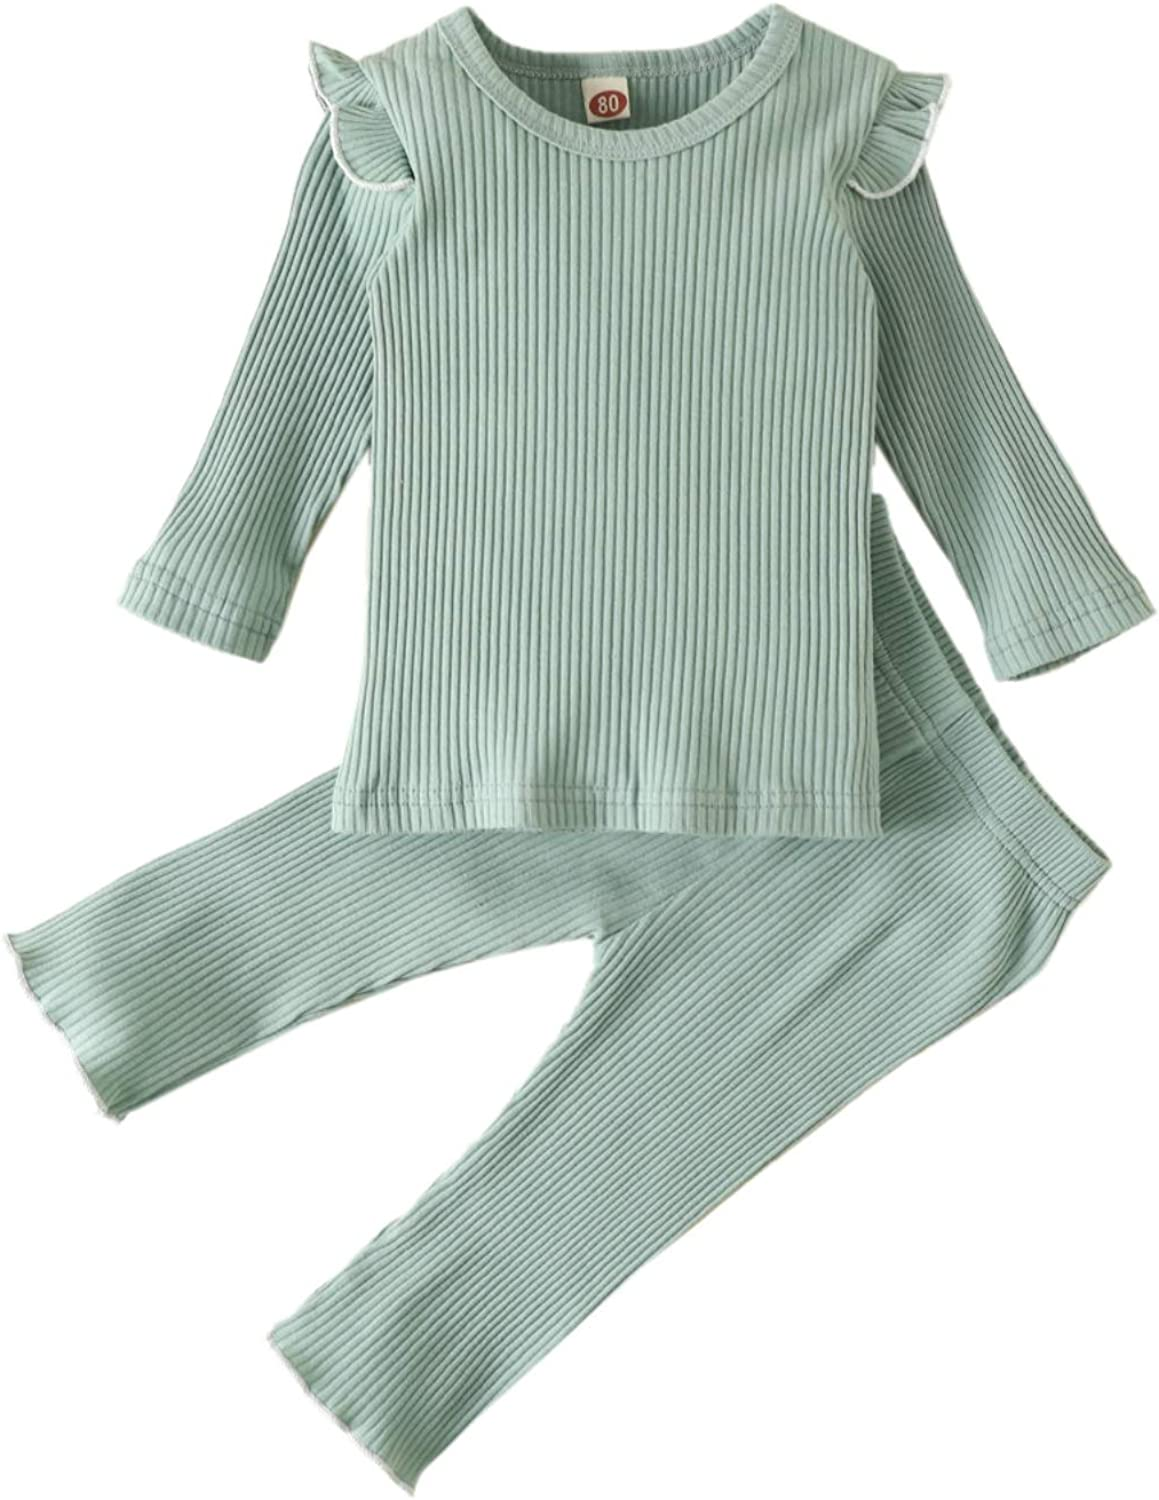 Ranking TOP5 Toddler Baby Girl Fall Winter Outfit Knitted Solid Long Clothes 5 ☆ very popular